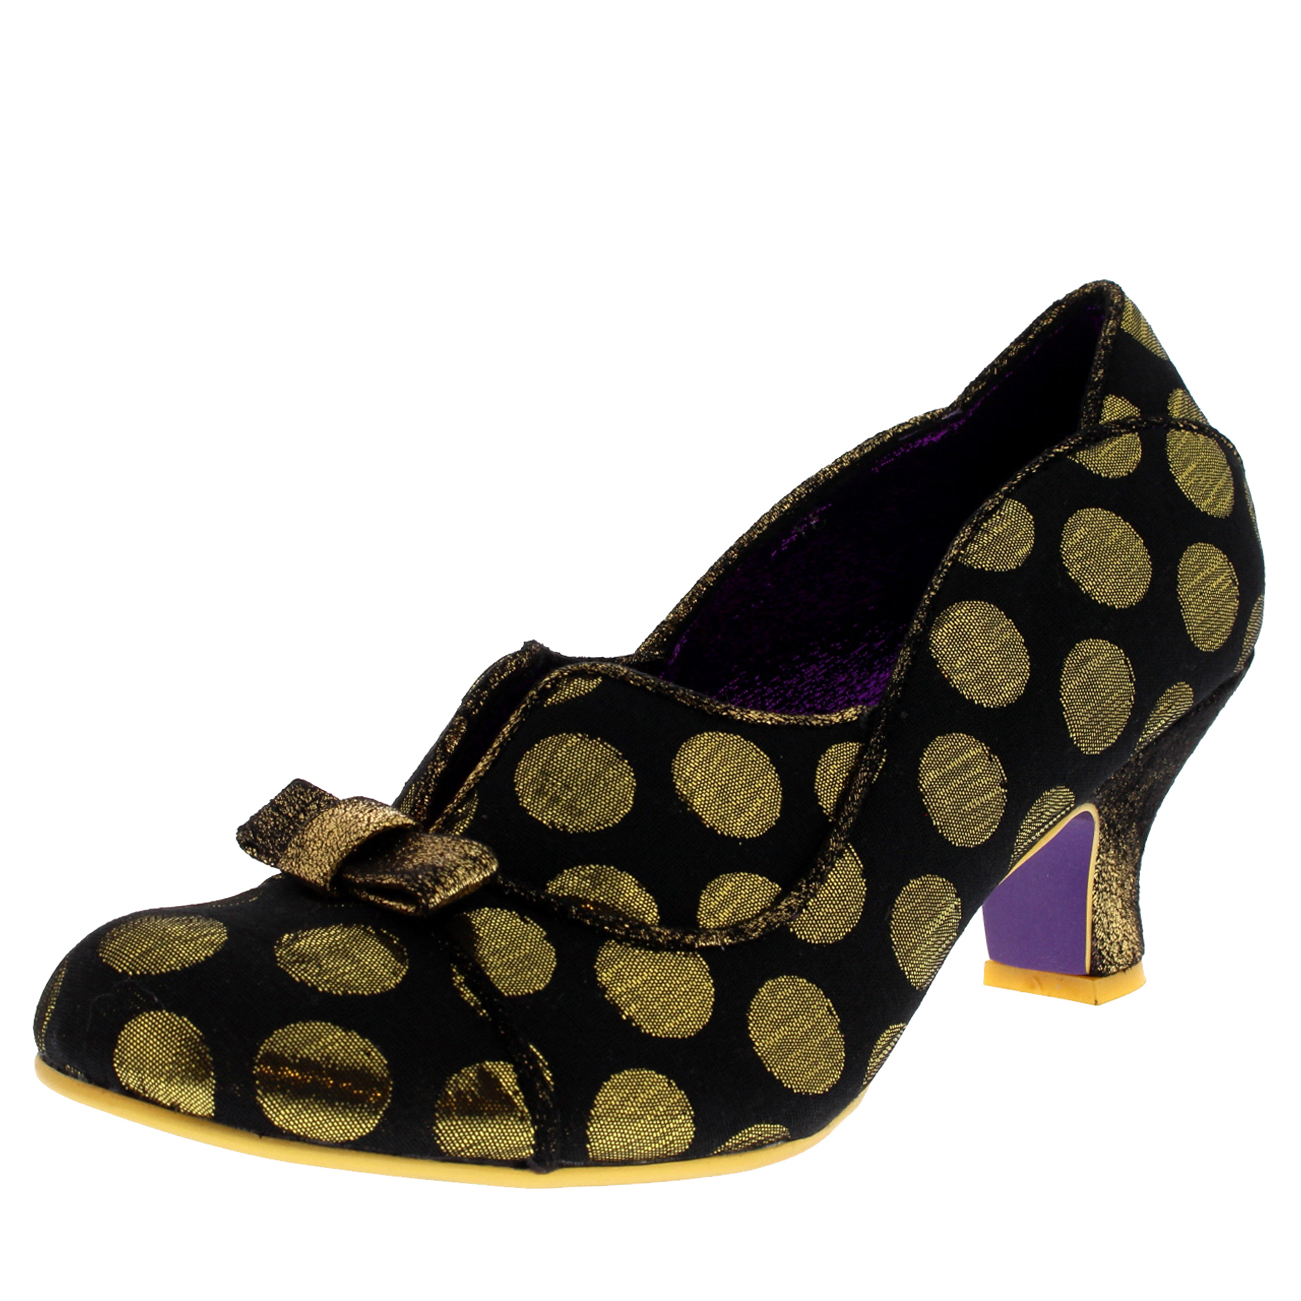 Donna Poetic Licence Hold Heel Up Polka Dot Low Heel Hold Party Court Shoes UK 3.5-8.5 600868